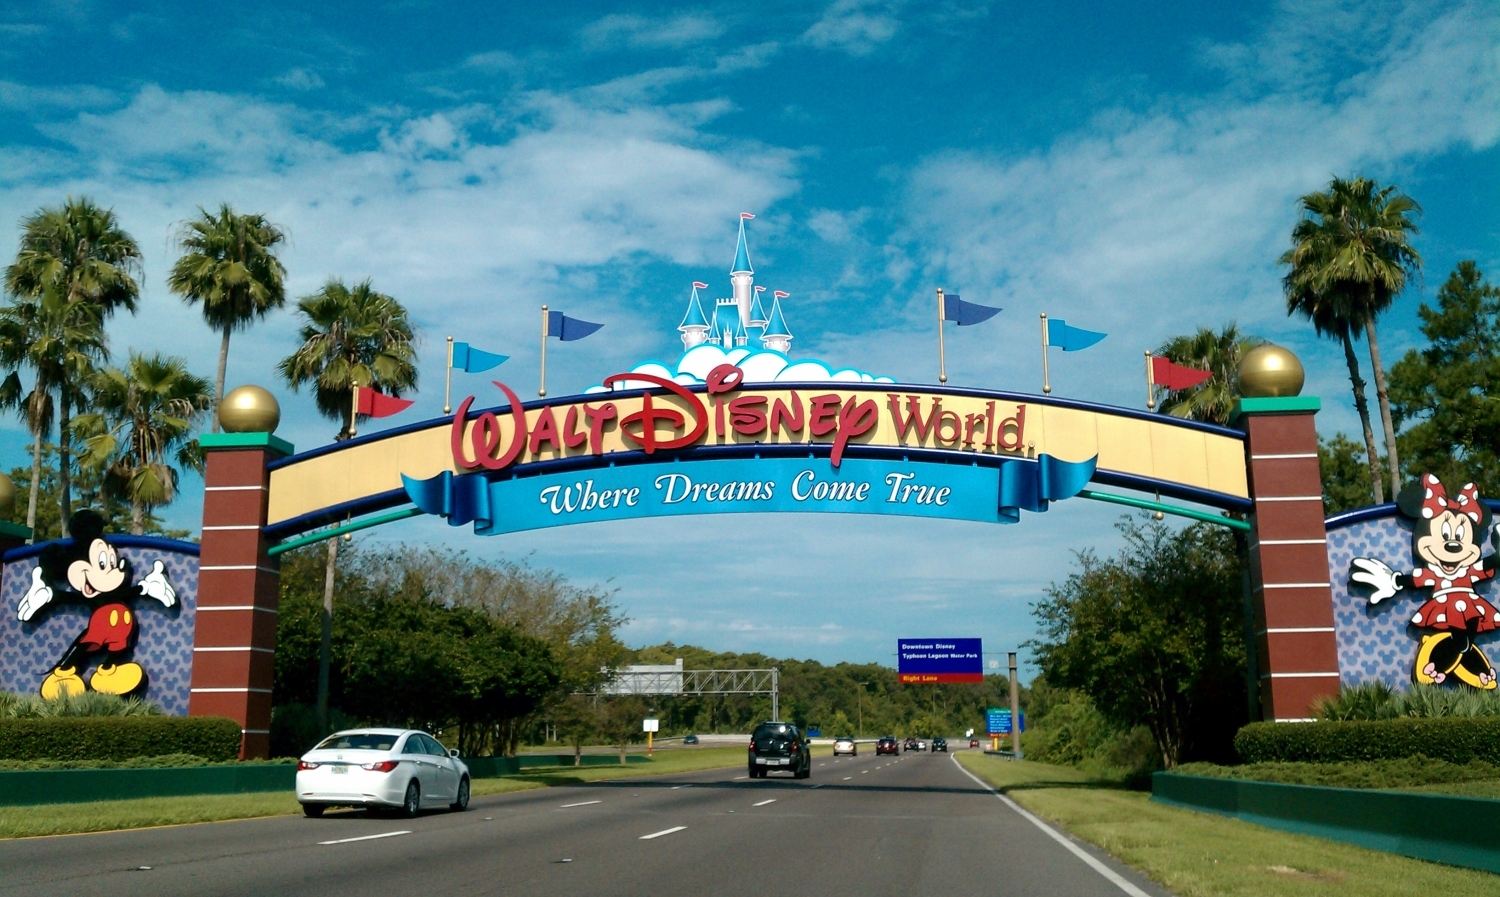 Entrance to Disney World Orlando